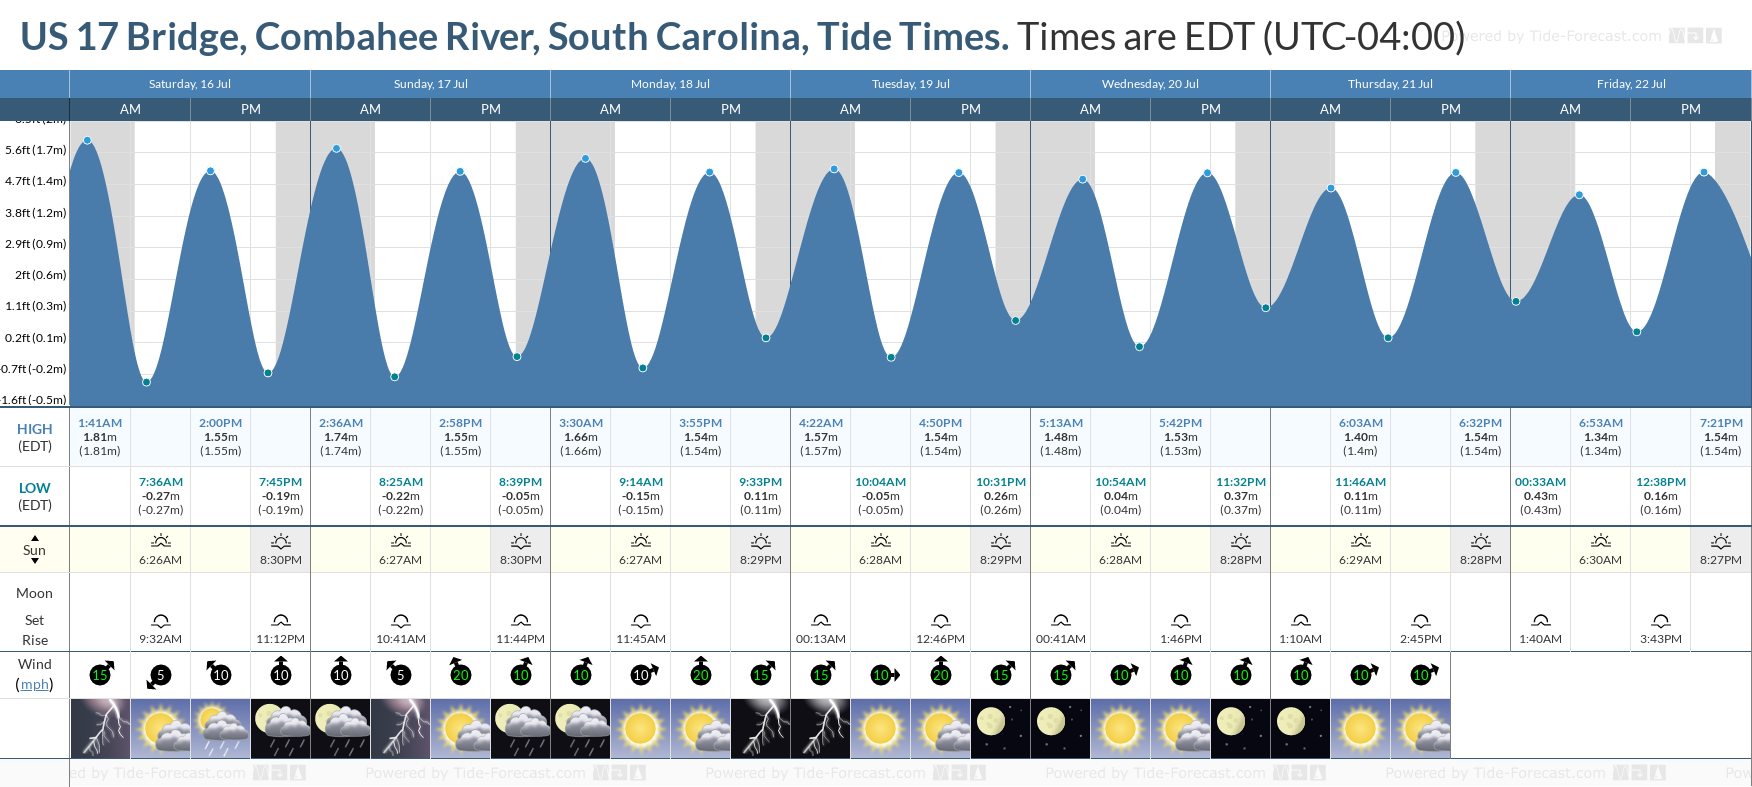 US 17 Bridge, Combahee River, South Carolina Tide Chart including high and low tide tide times for the next 7 days